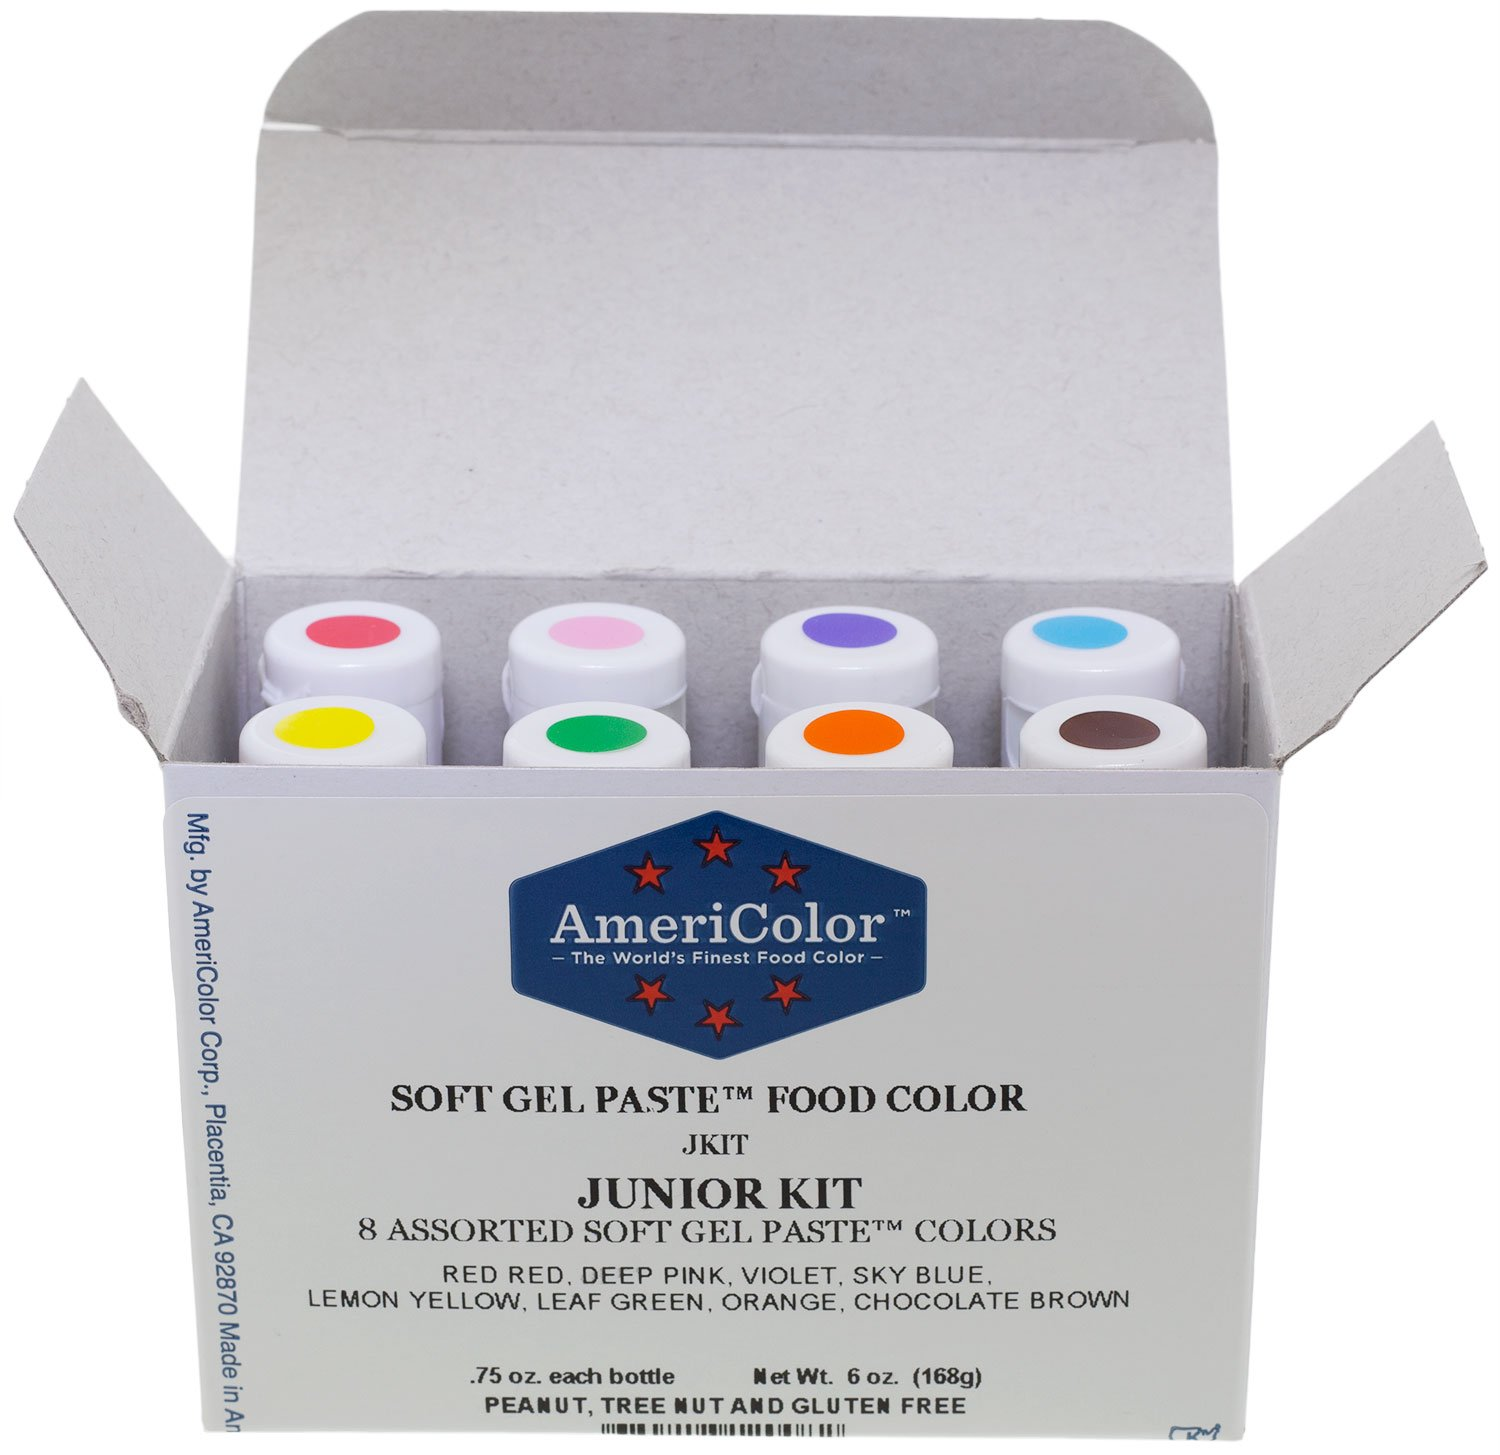 Amazon.com: Food Coloring AmeriColor Soft Gel Paste Food Color ...